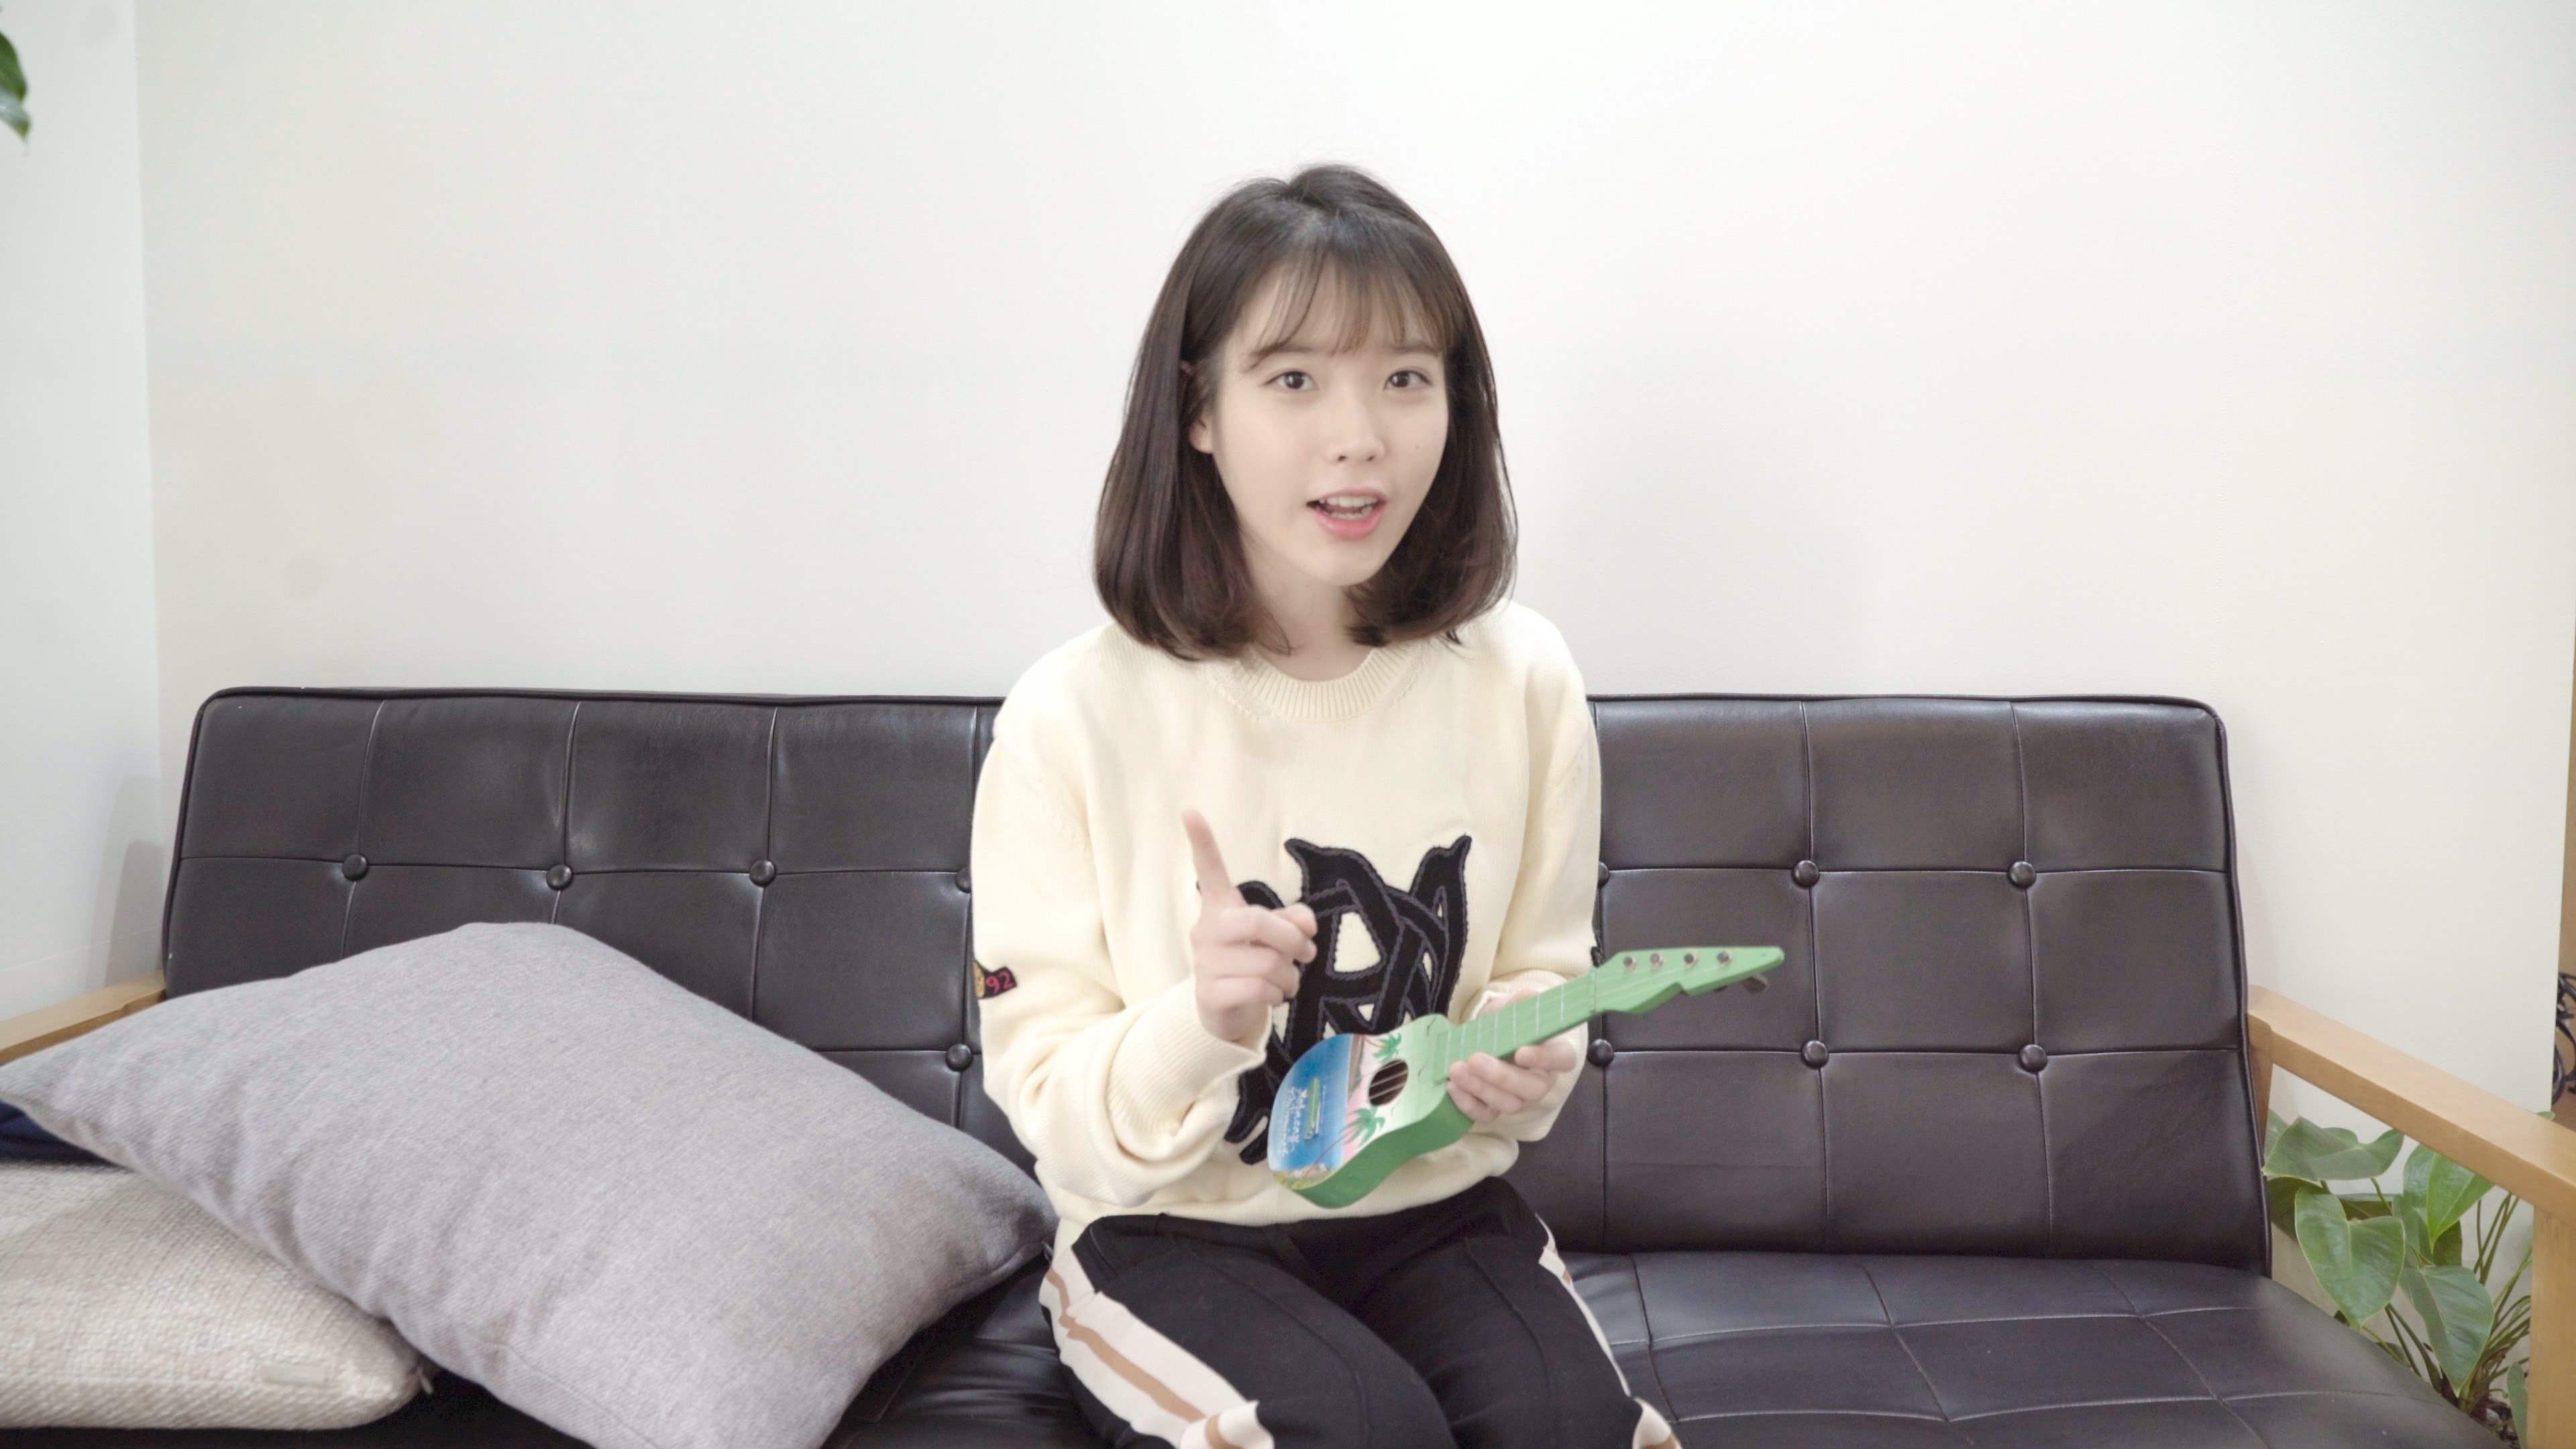 [IU TV] Sneak Peek for UAENA (아이유 습작곡 깜짝 공개) (April Fools' Day Special)